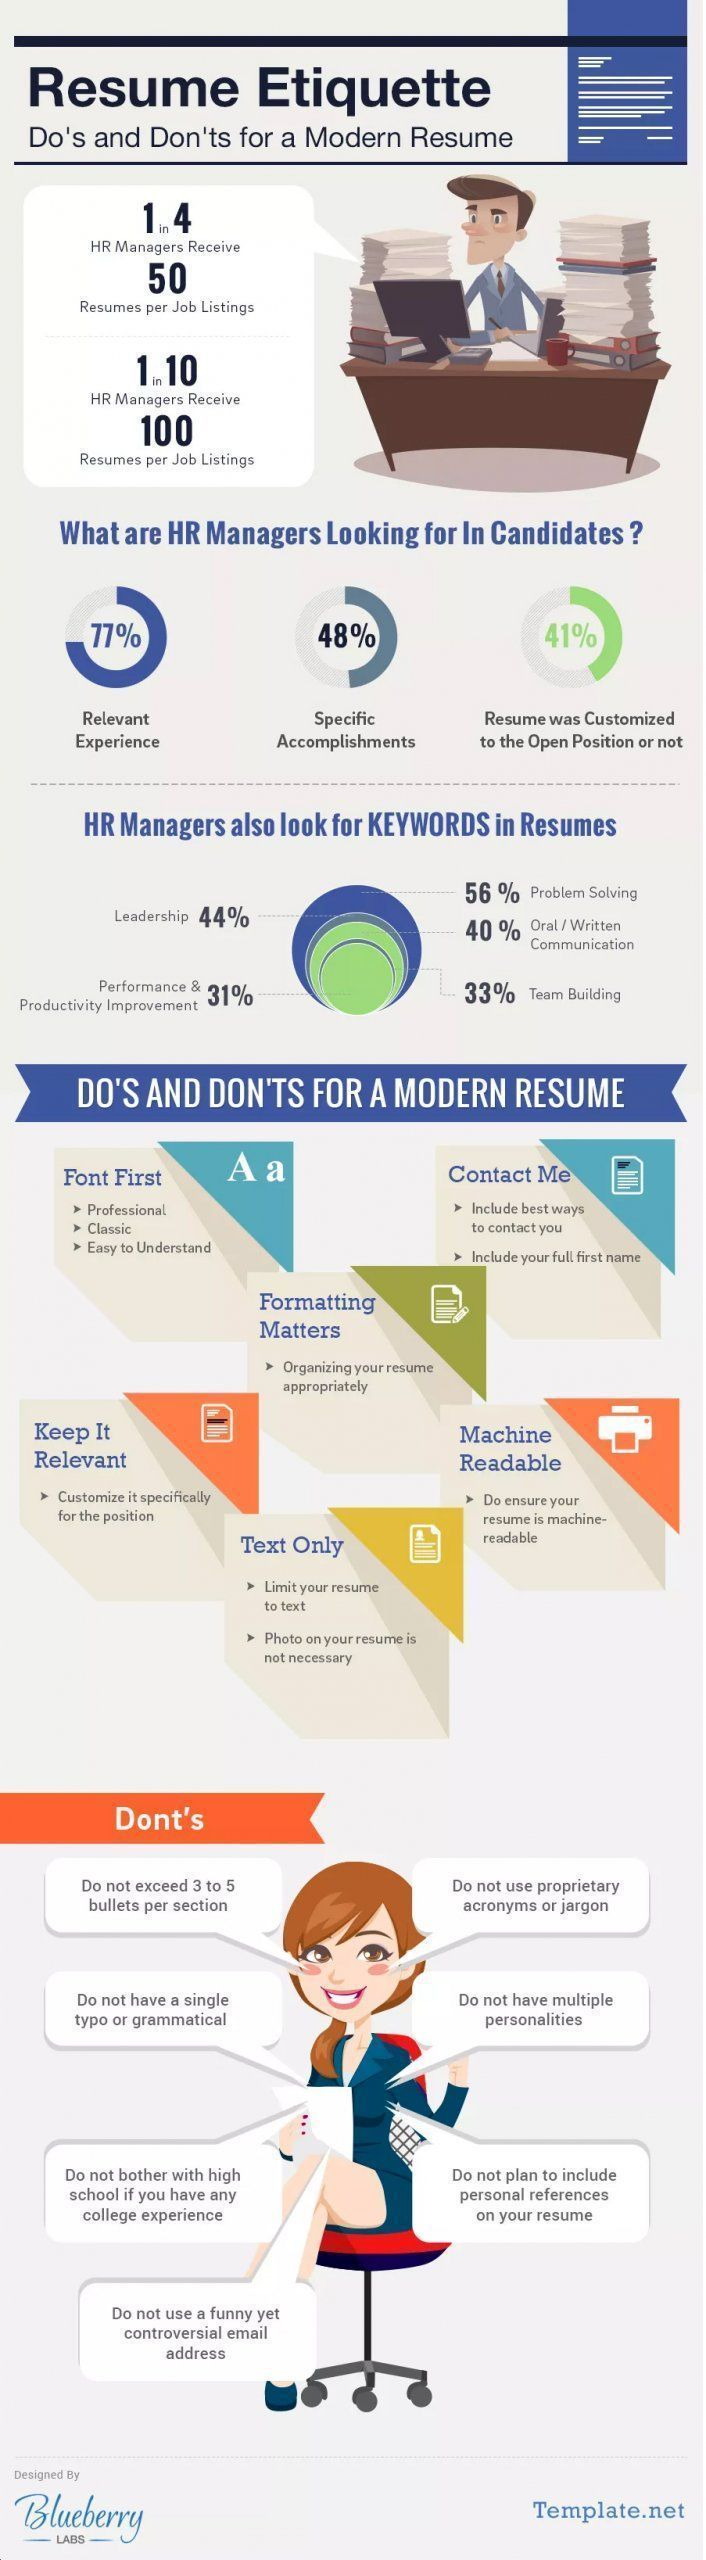 162 best Resumes, Cover Letters, and Interviews images on Pinterest ...